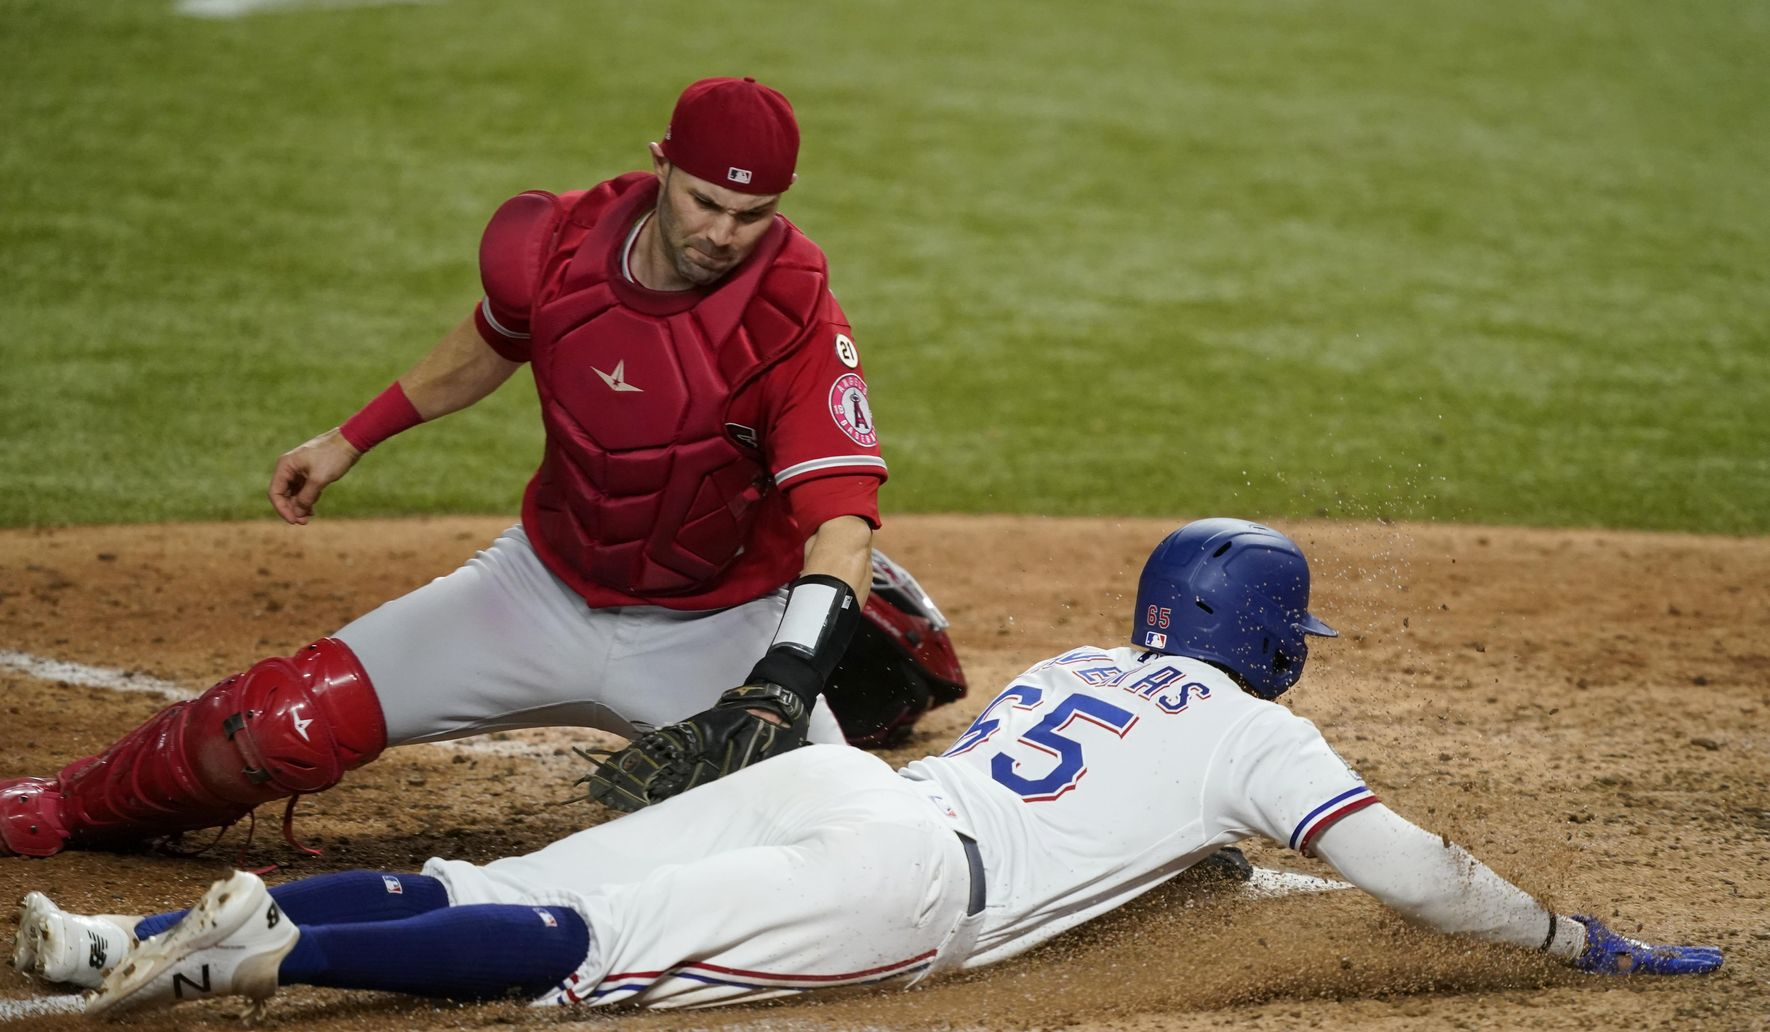 Angels_rangers_baseball_00721_c0-251-6000-3749_s1770x1032